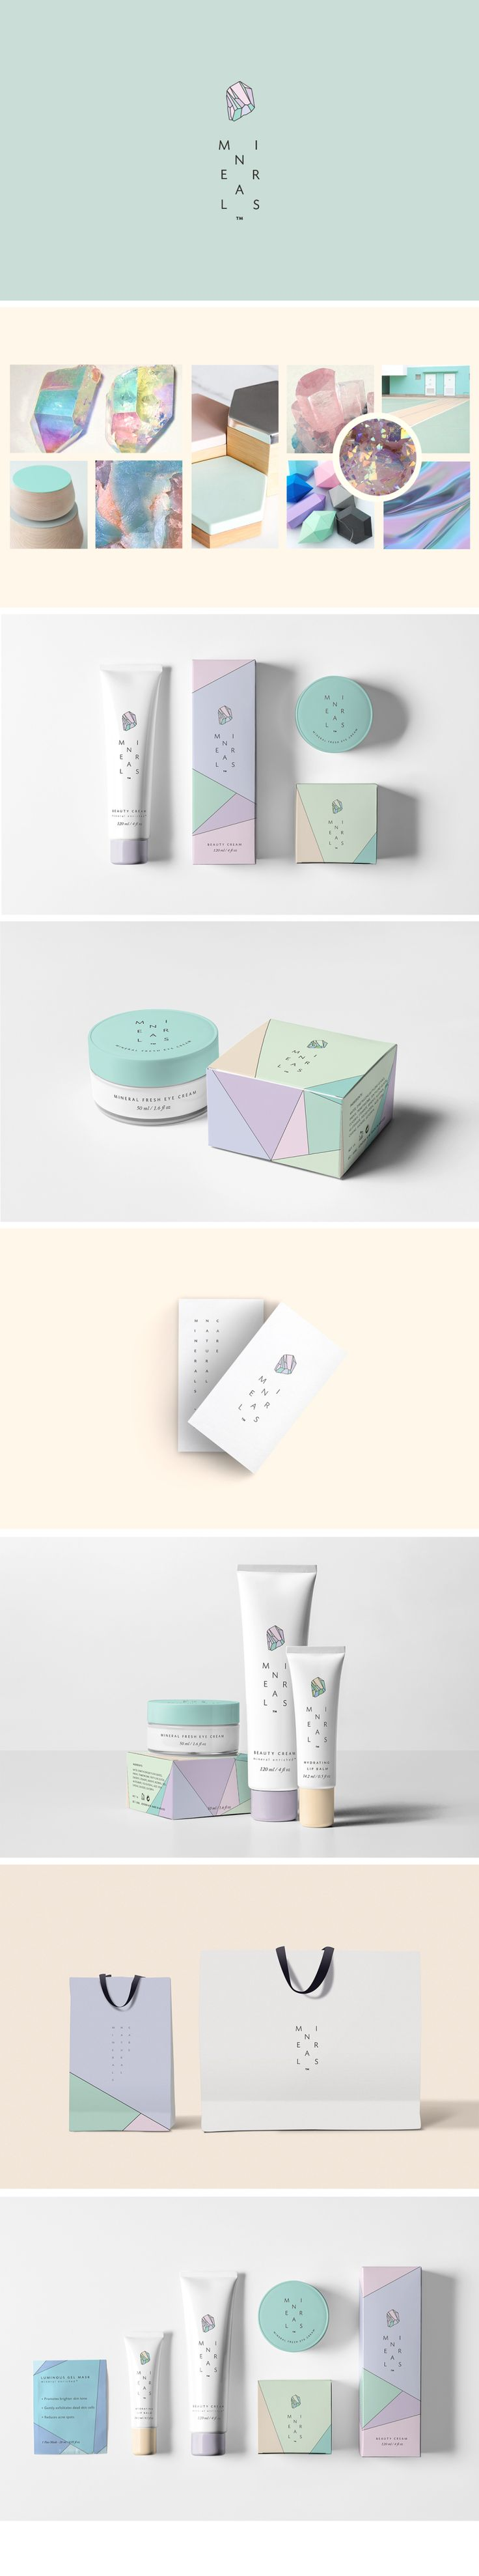 Minimal Pastel Branding by Design Studio 'Super Magic Friend'